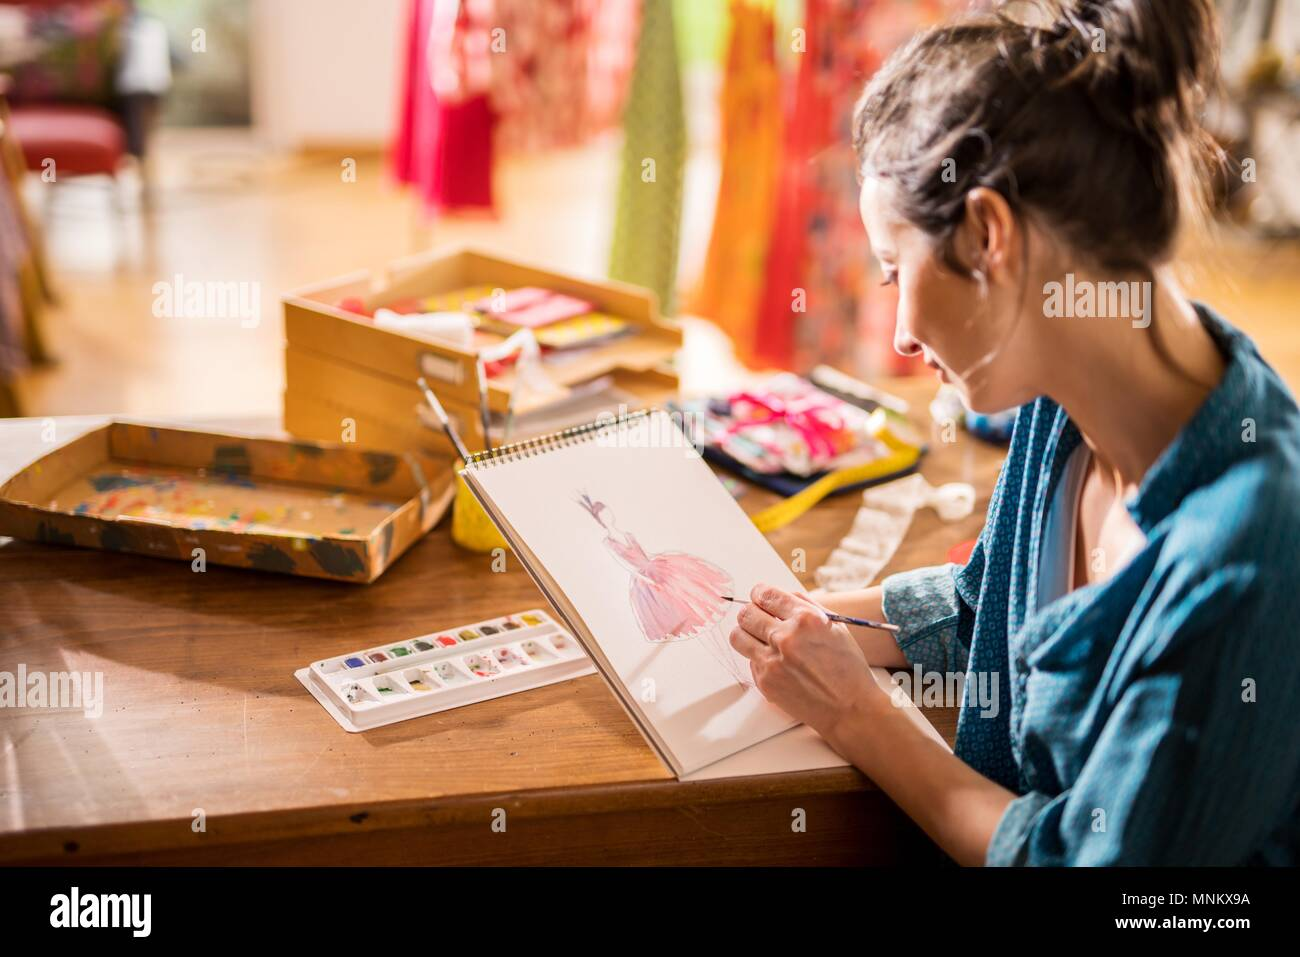 Fashion designer working on a new model, in her studio - Stock Image